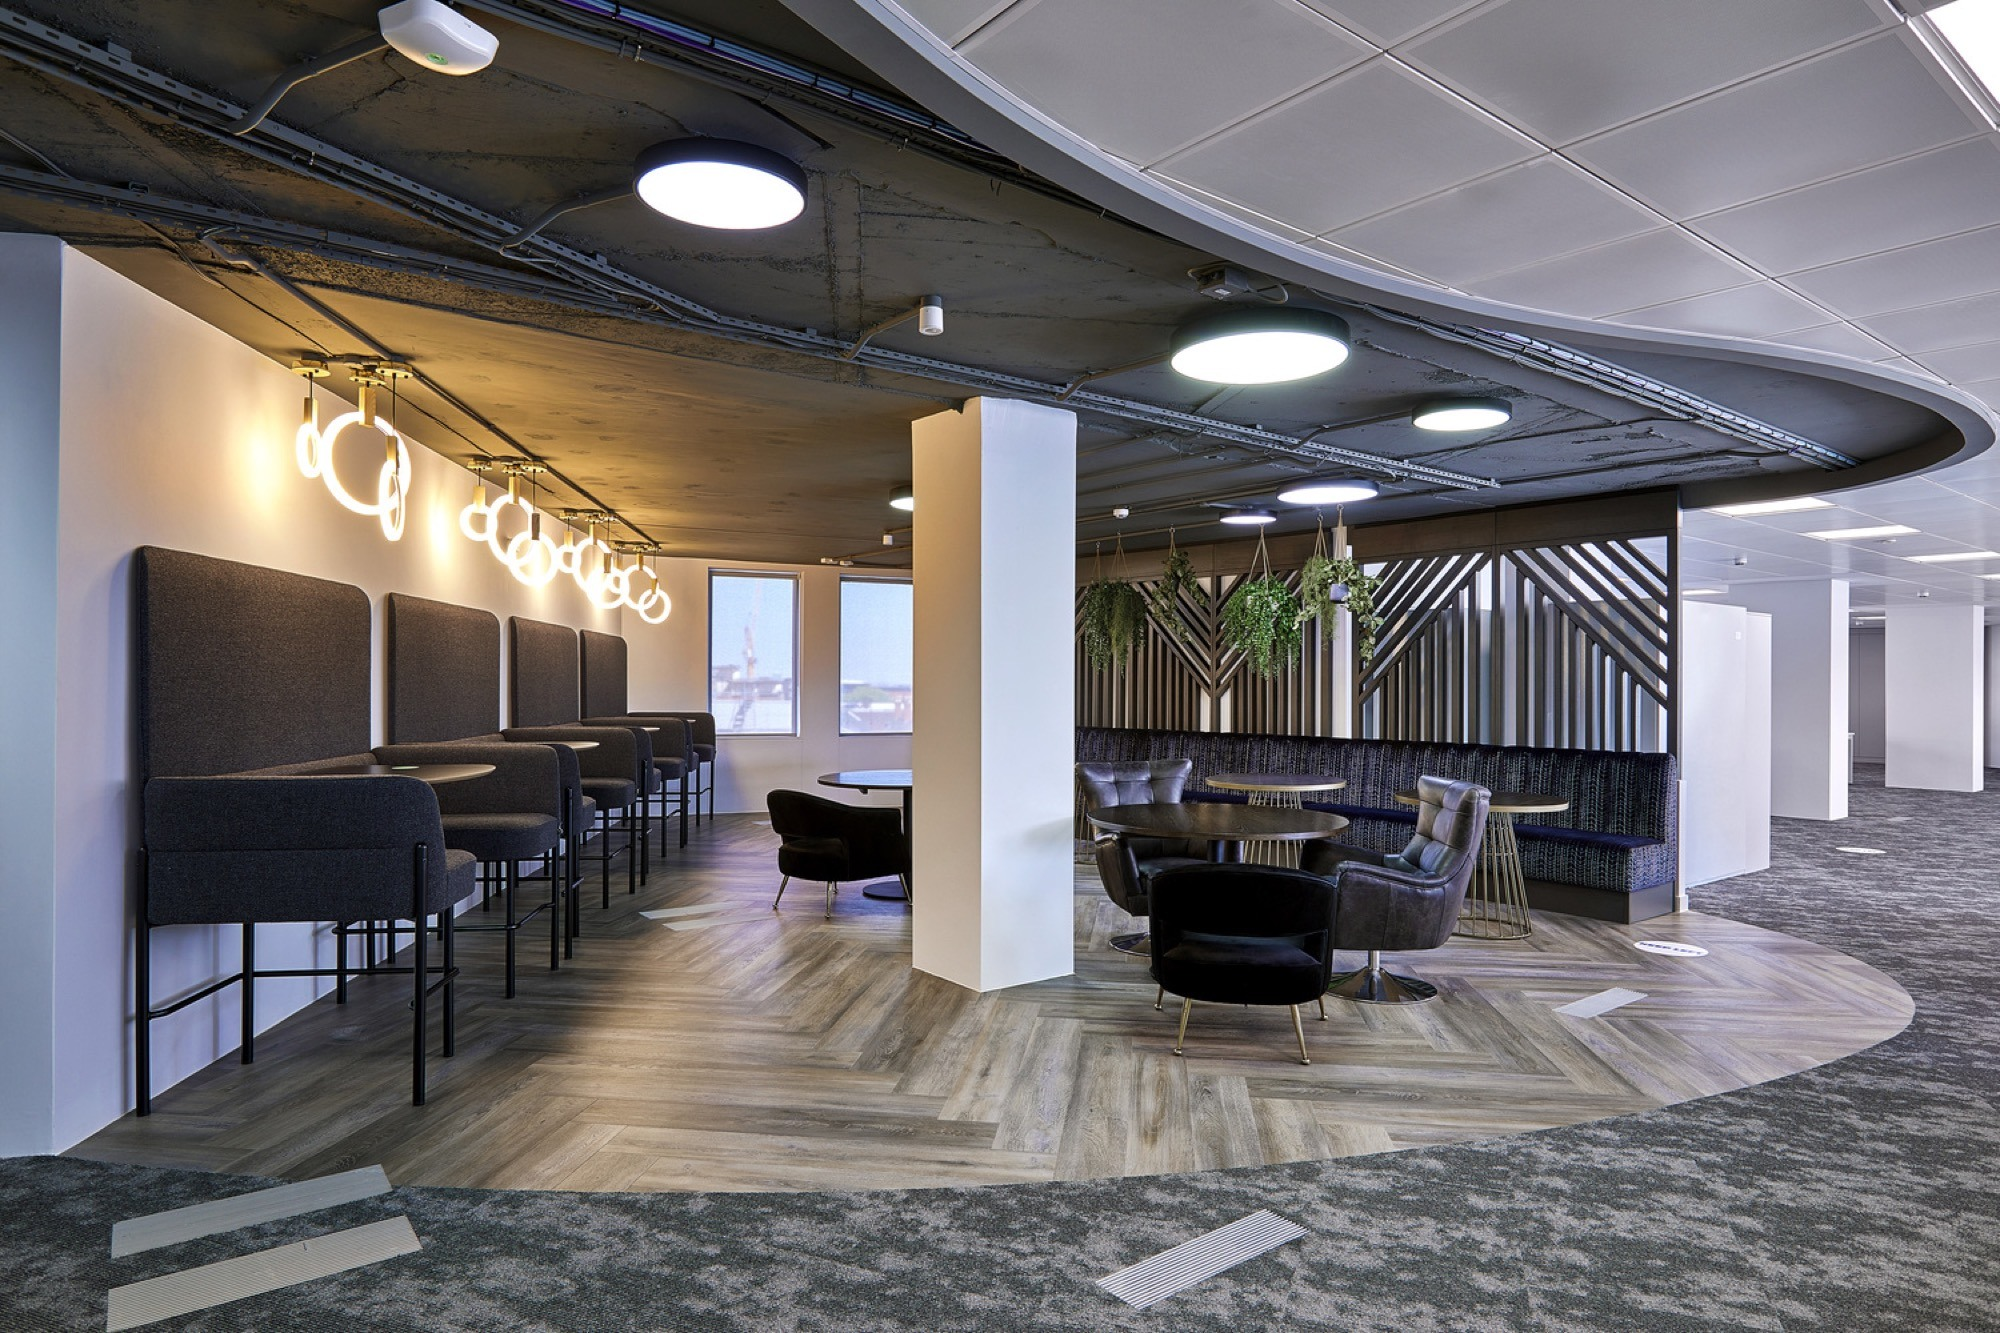 FIS breakout area design and build